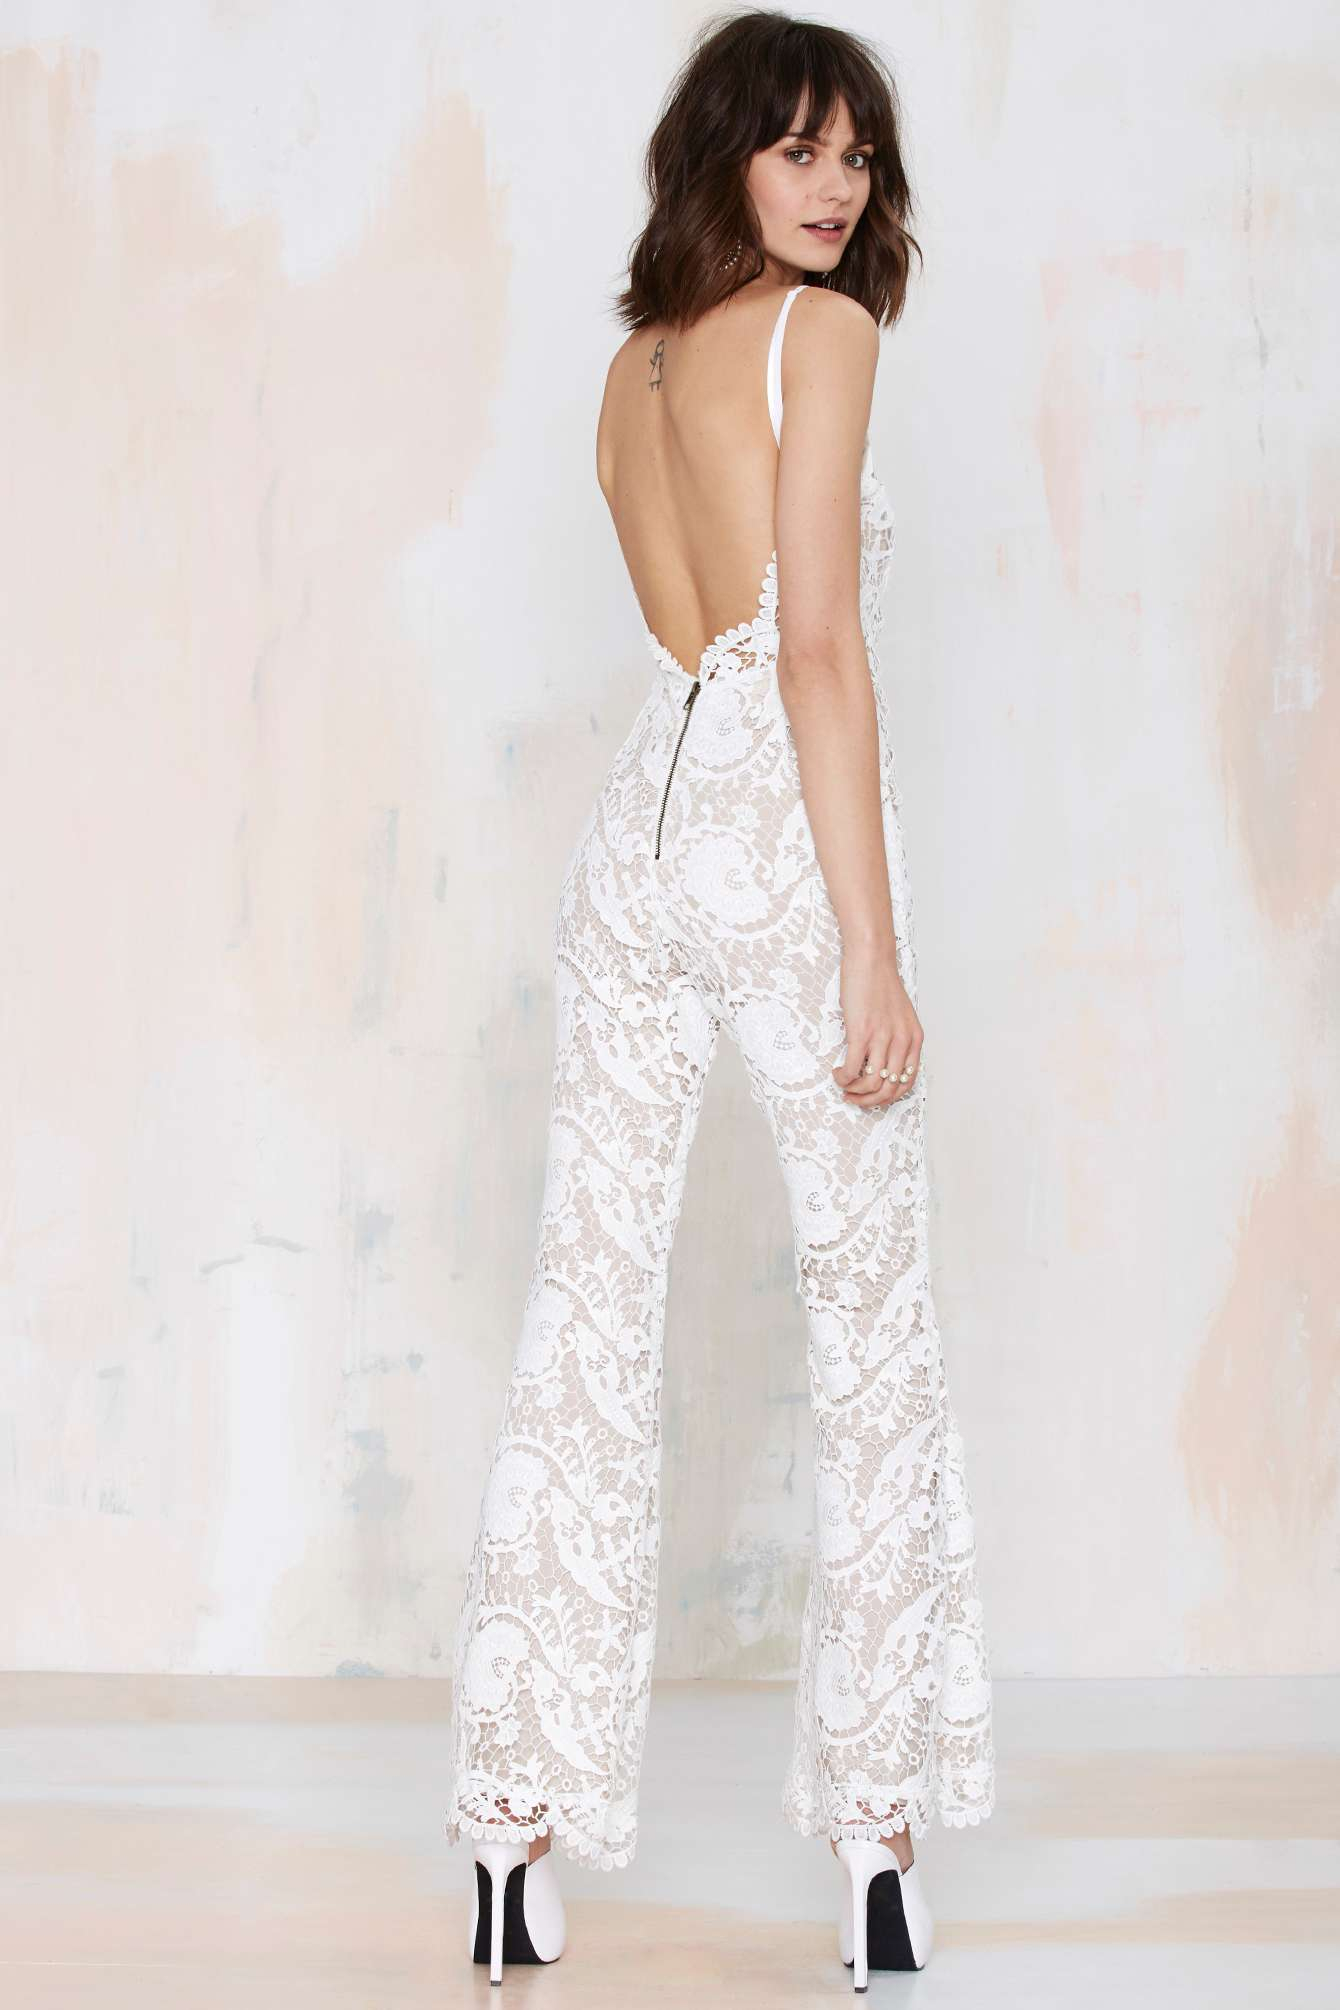 d5fdd4249ef Lyst - Nasty Gal Stone Cold Fox Elliot Lace Flare Jumpsuit in White